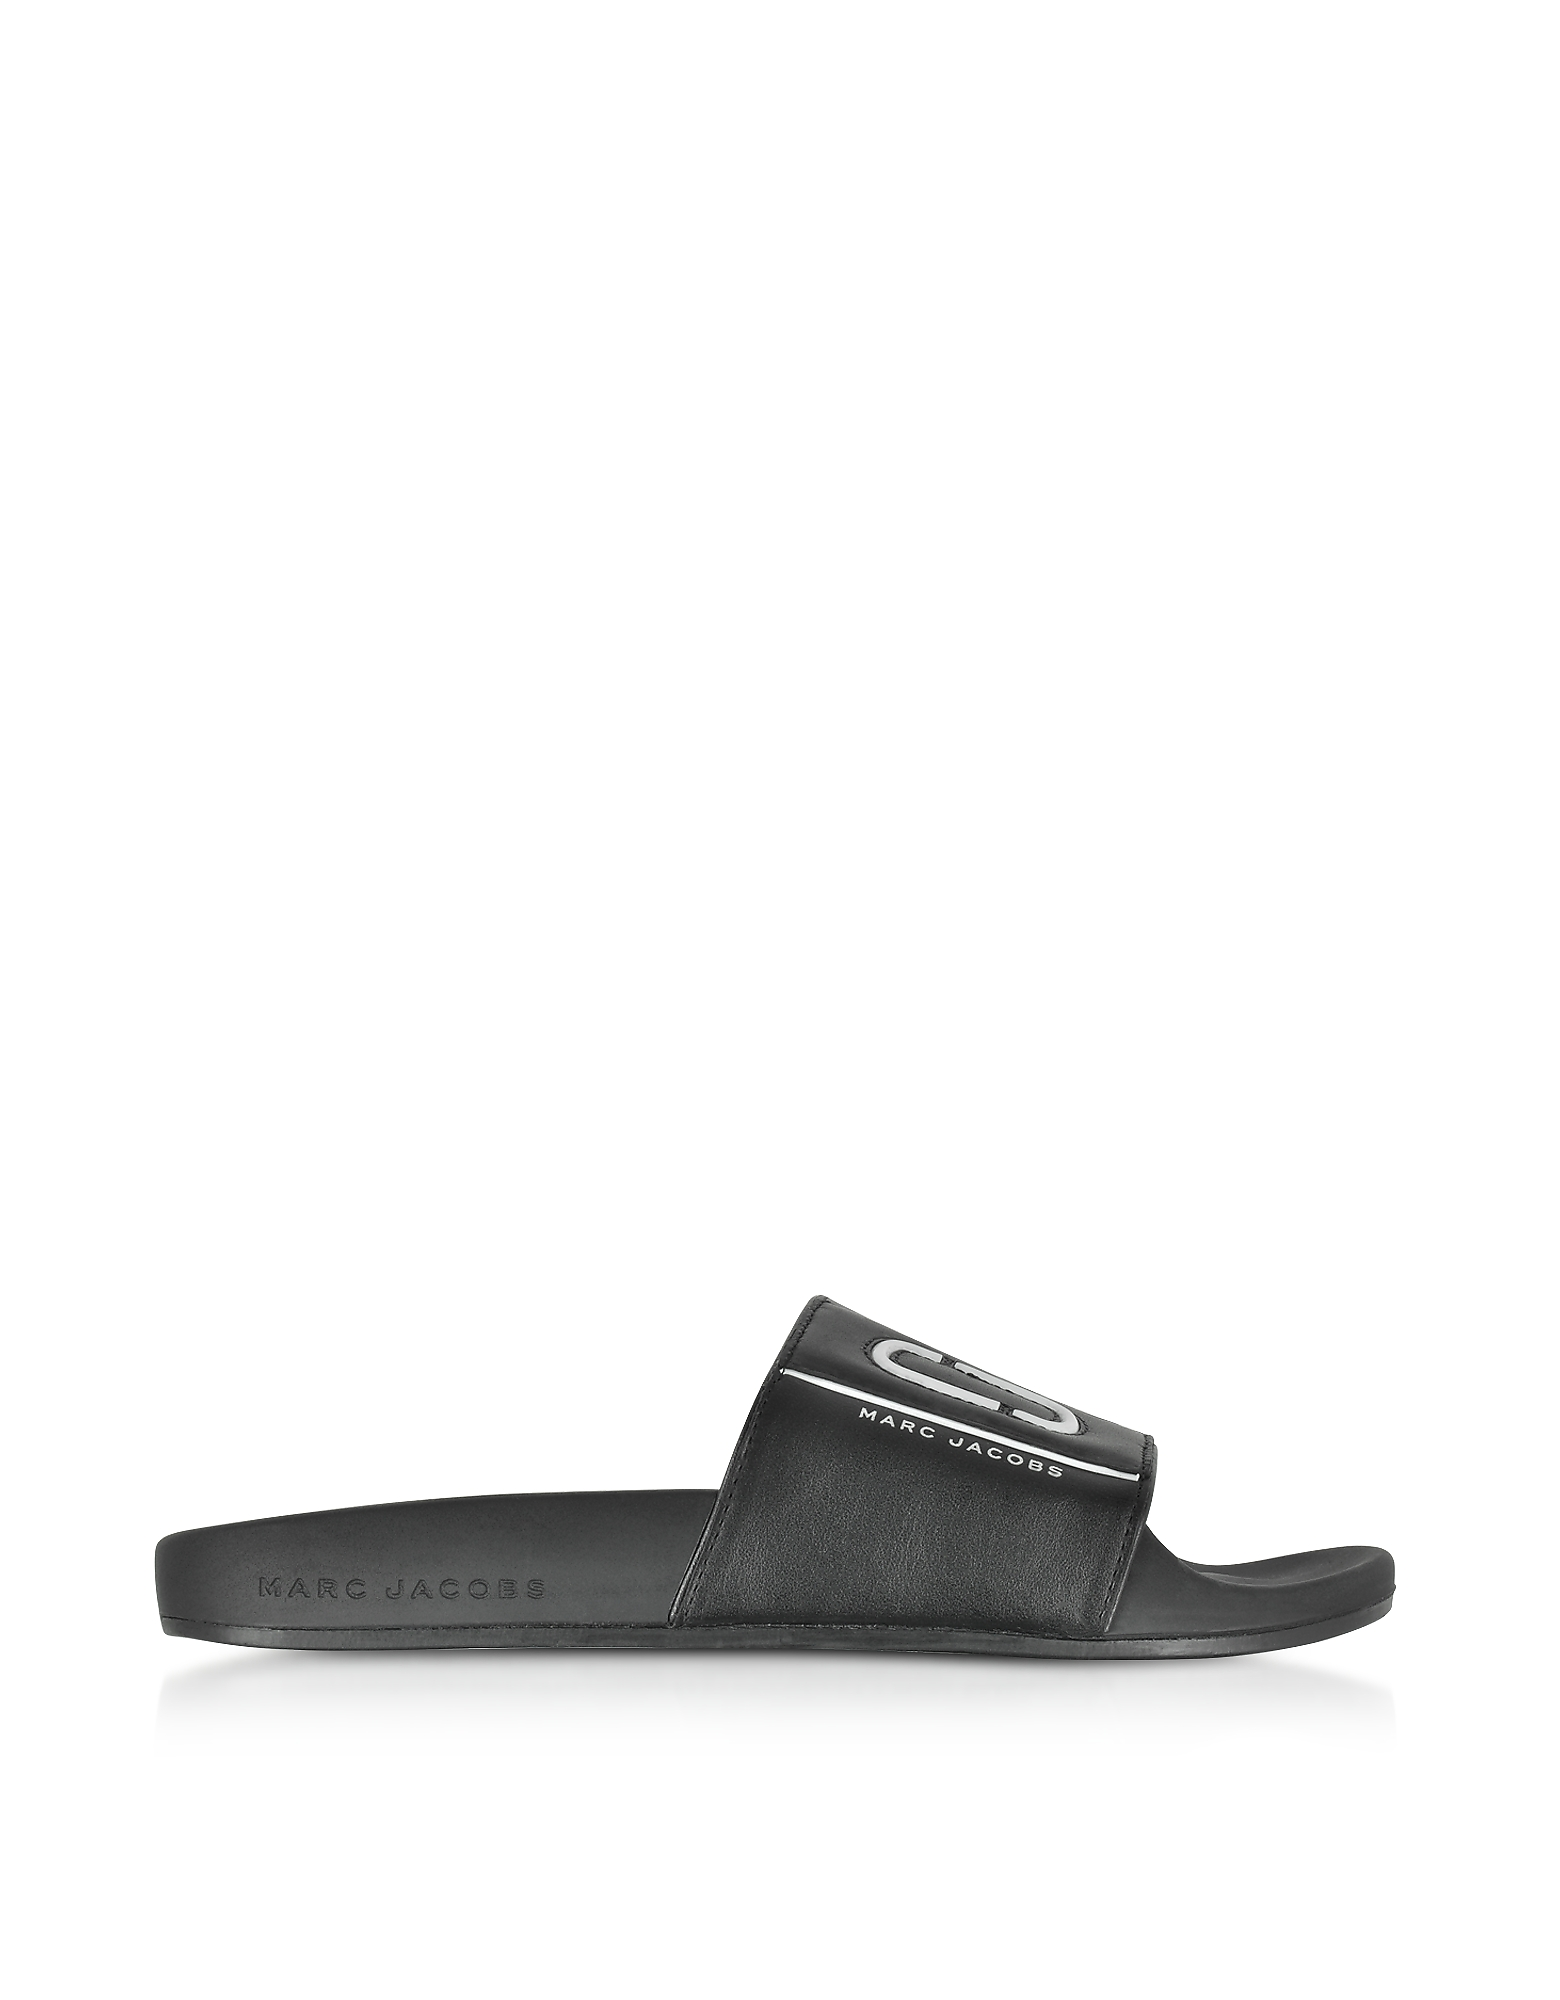 Marc Jacobs Shoes, Black Leather Cooper Sport Slide